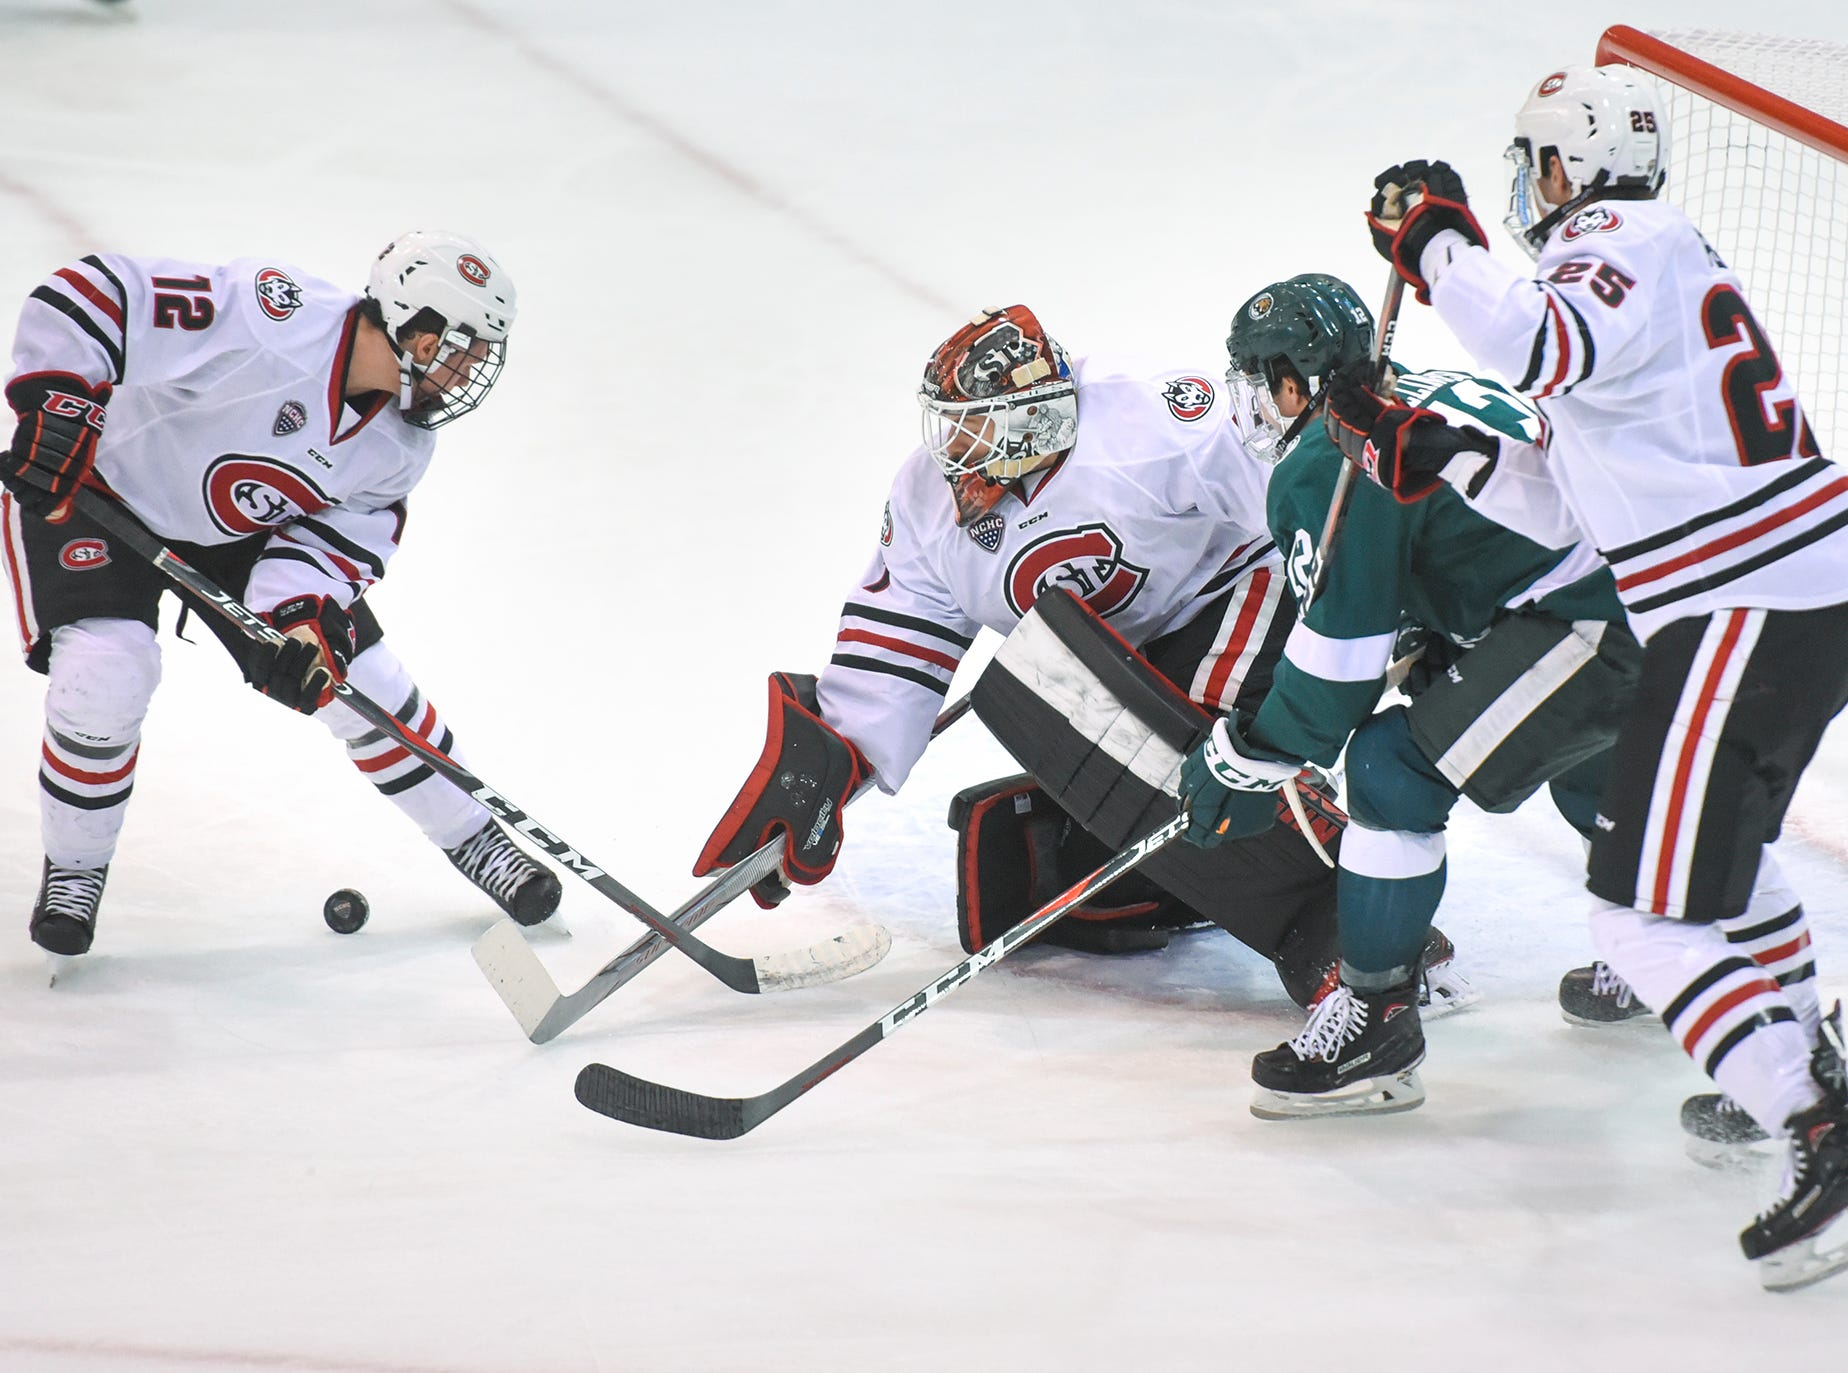 The puck bounces in front of the St. Cloud State goal during the first period of the Friday, Nov. 16, game against Bemidji State at the Herb Brooks National Hockey Center in St. Cloud.